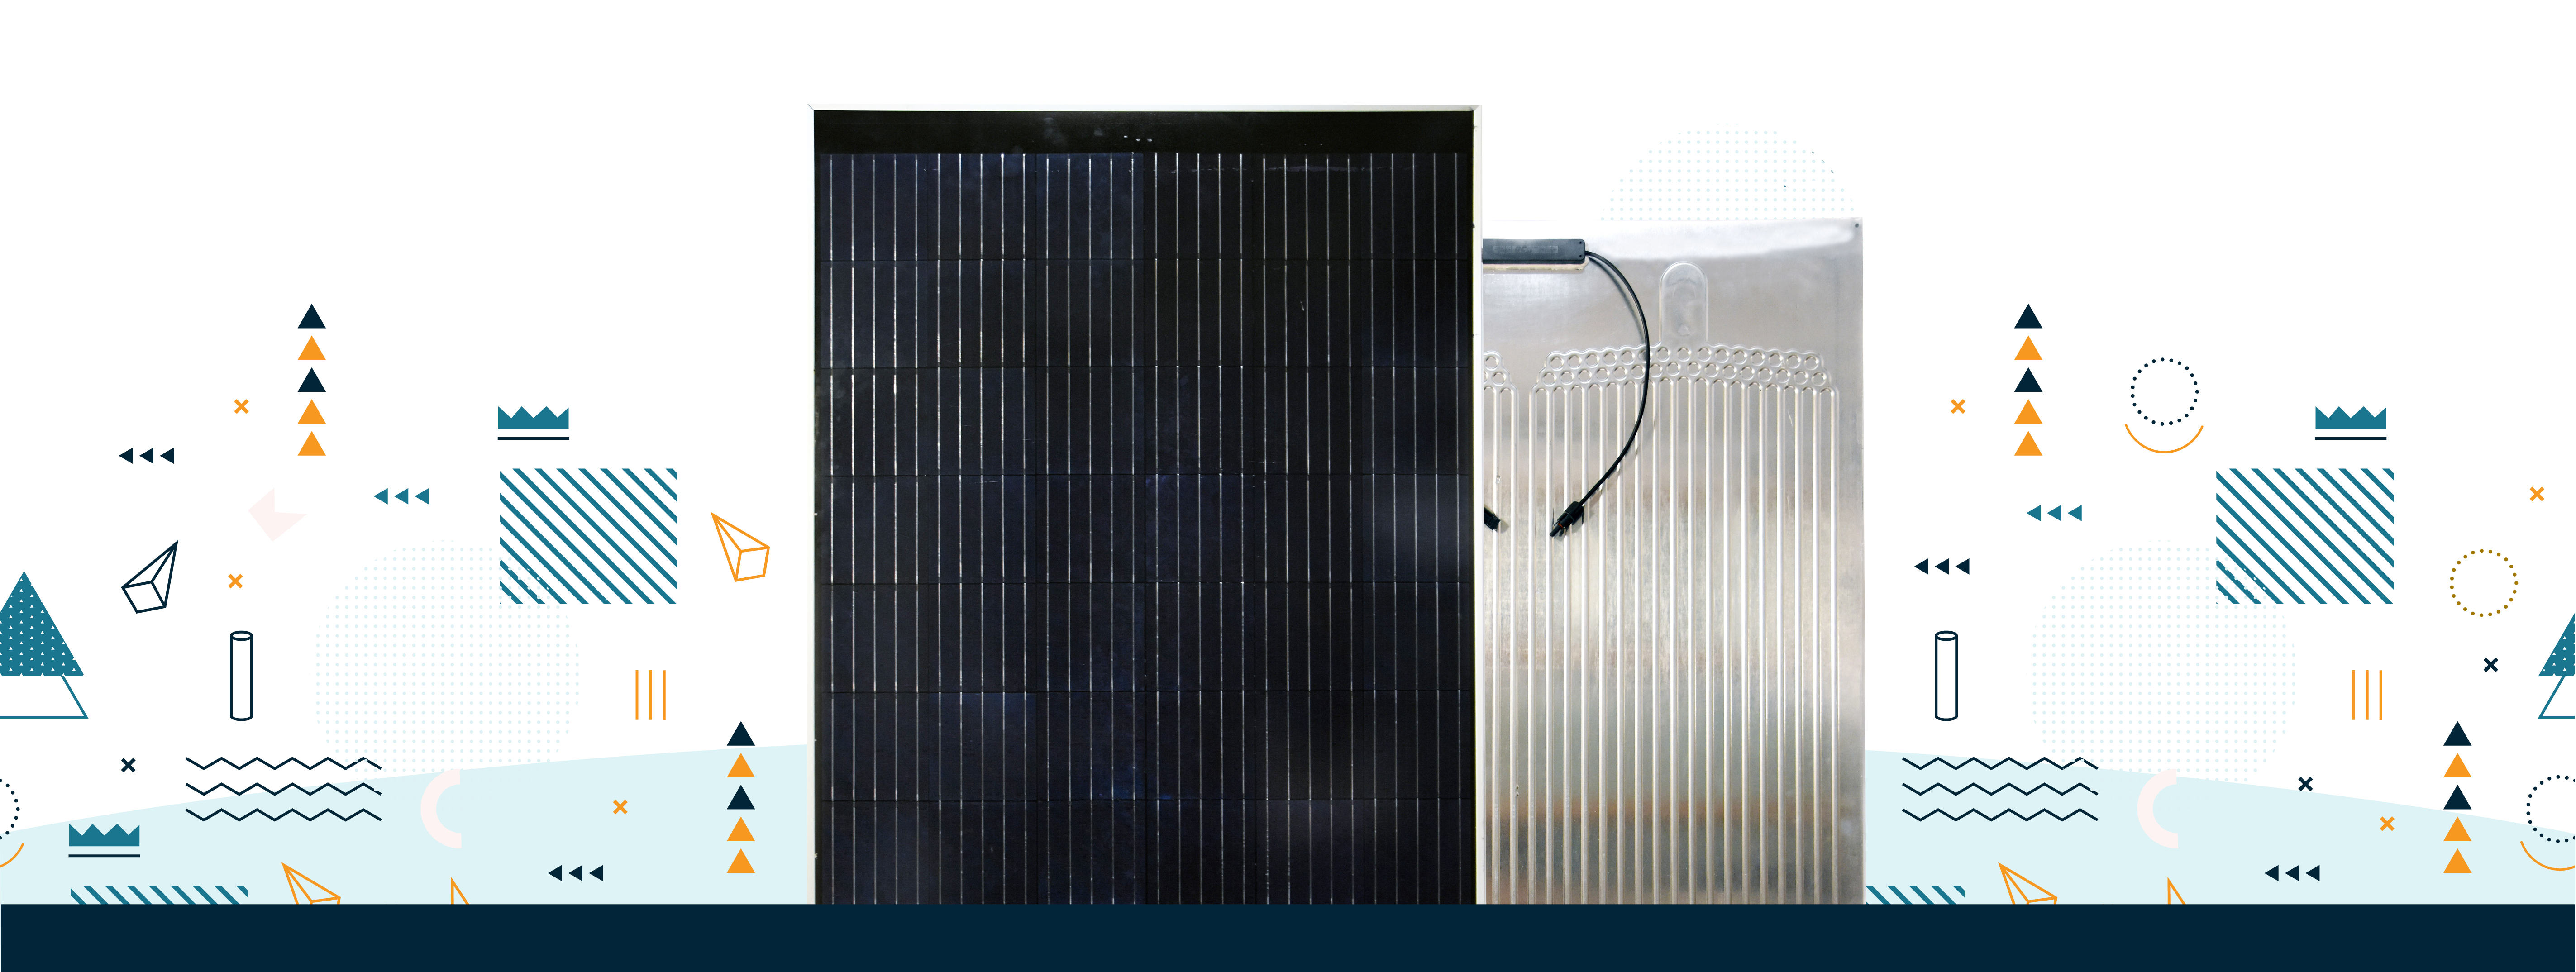 PVT solar hybrid panel, front and rear view